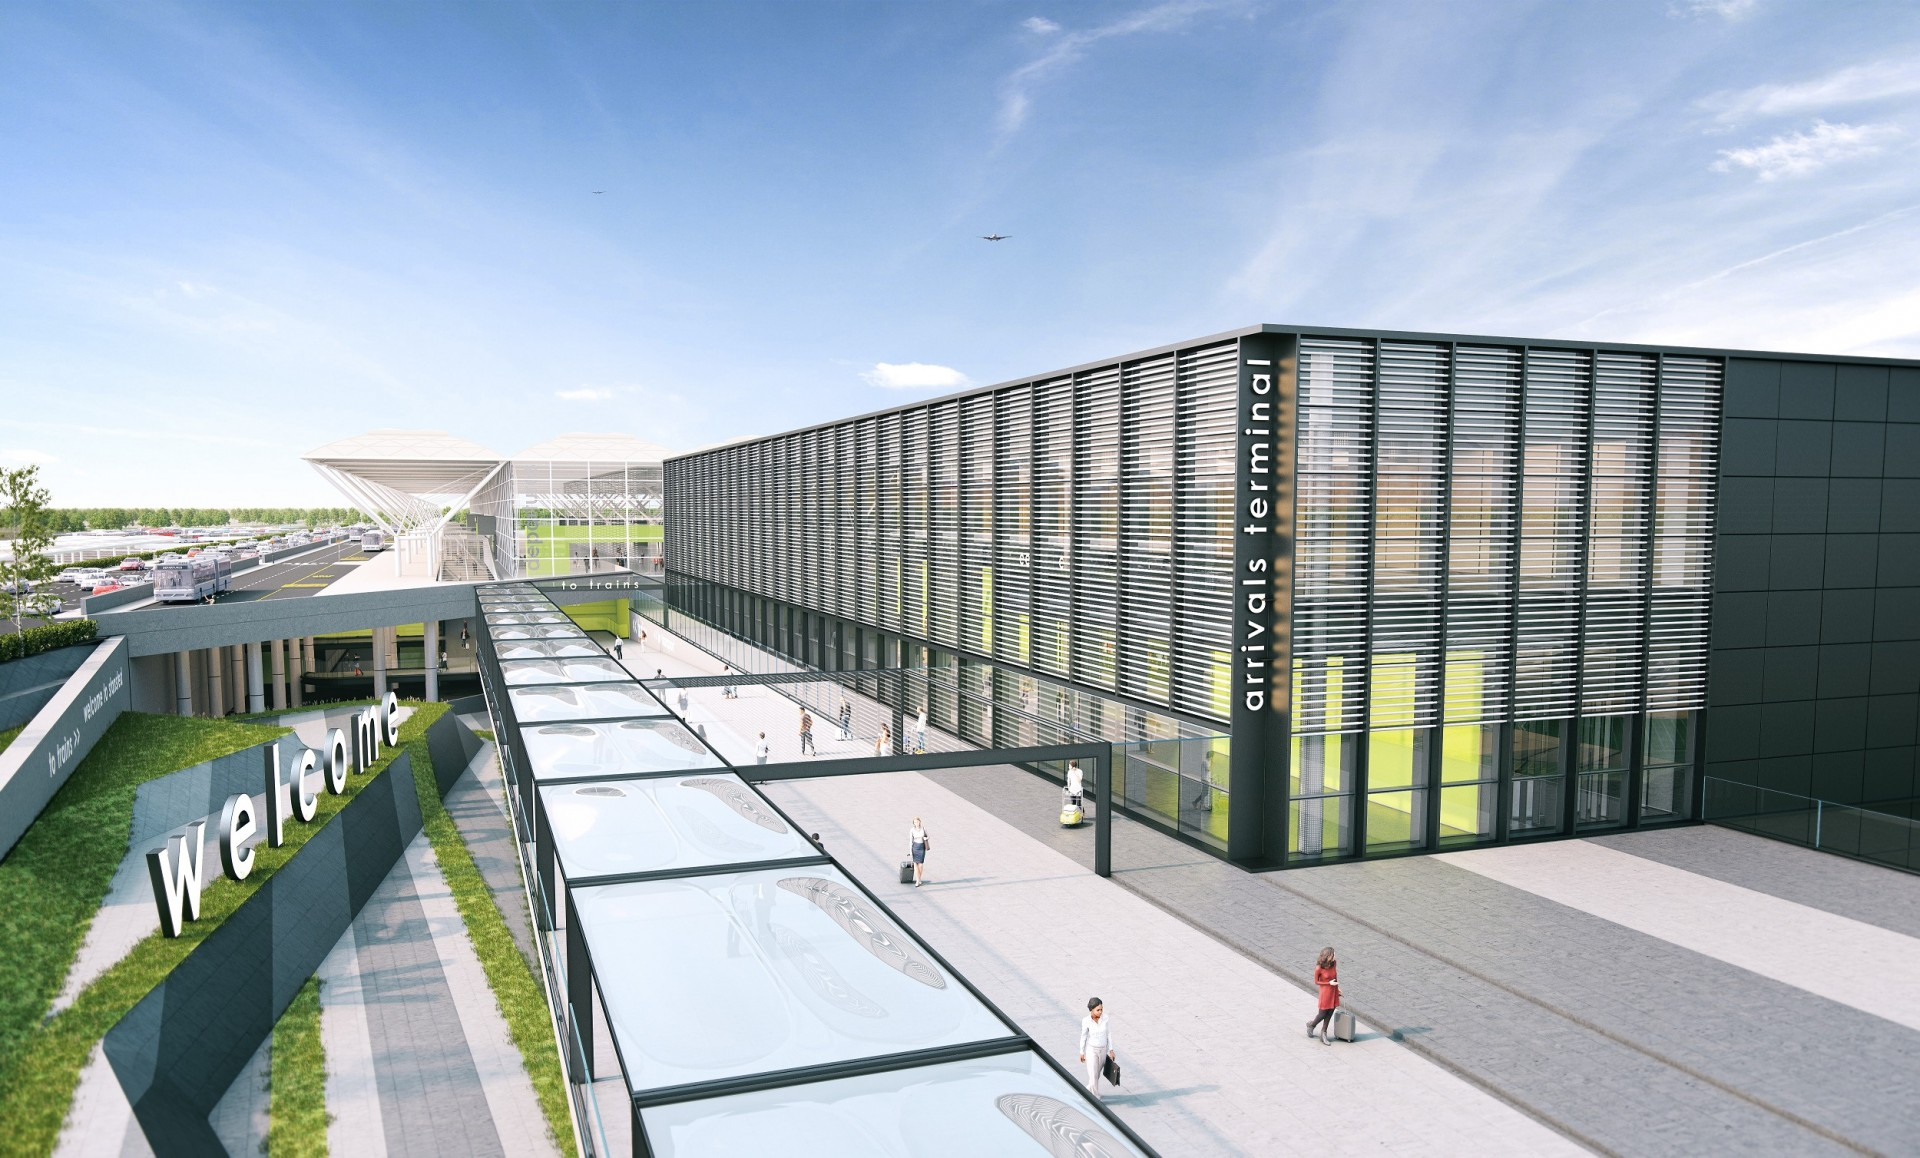 Stansted Unveils Striking New Images Of Arrivals Terminal